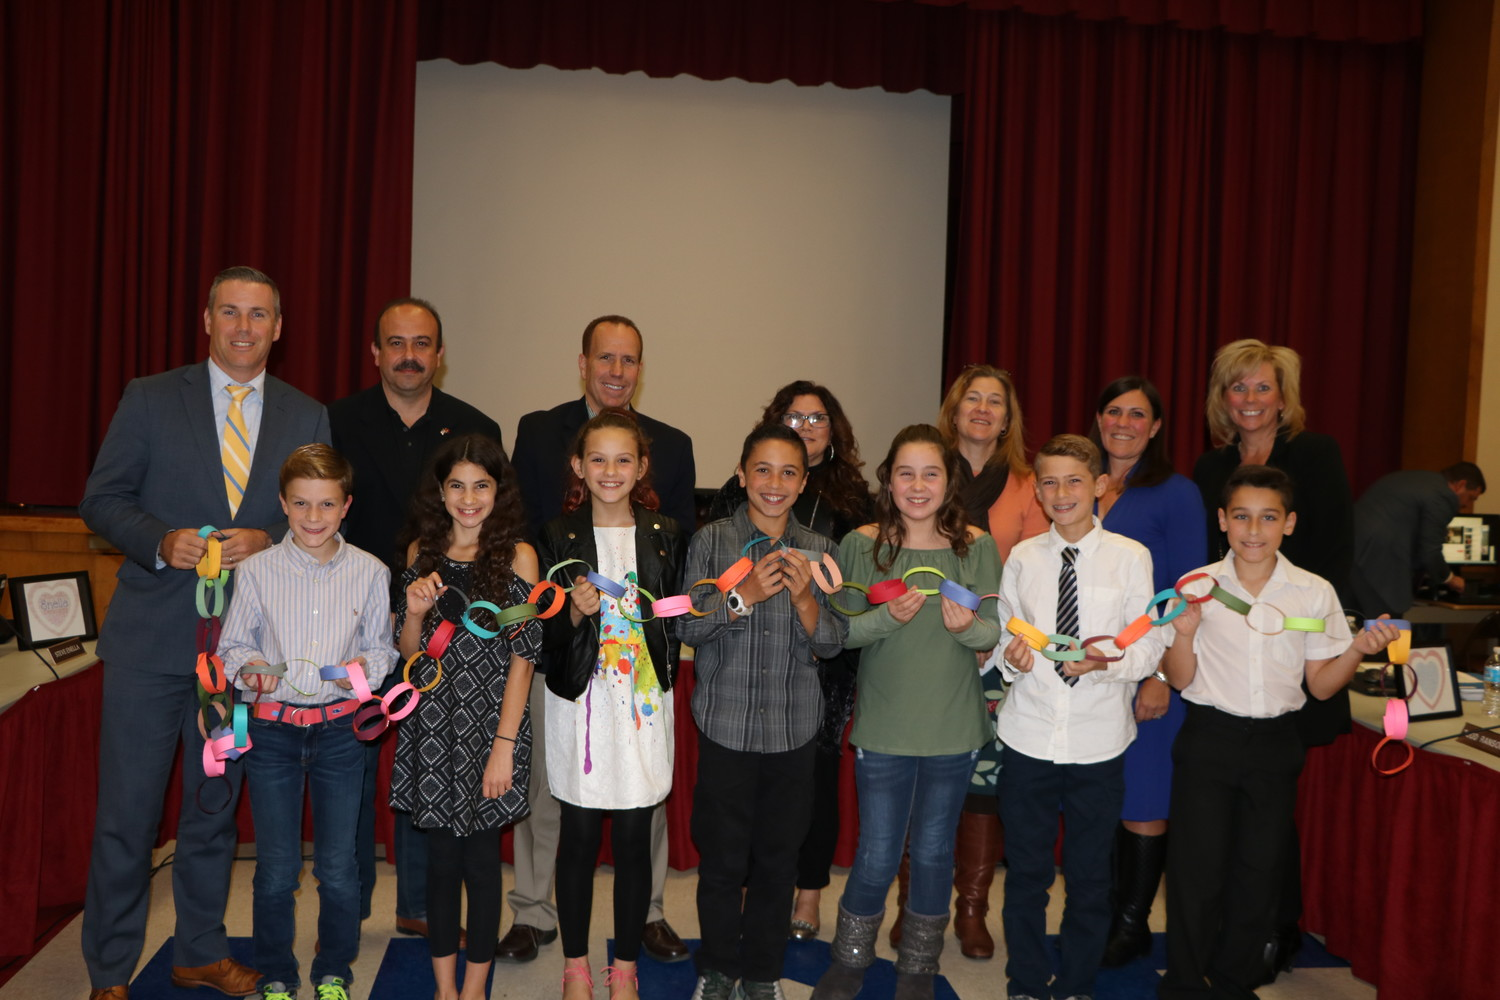 The North Merrick School Board, Student Council members from the three schools, and Superintendent of Schools Dr. Cynthia Seniuk